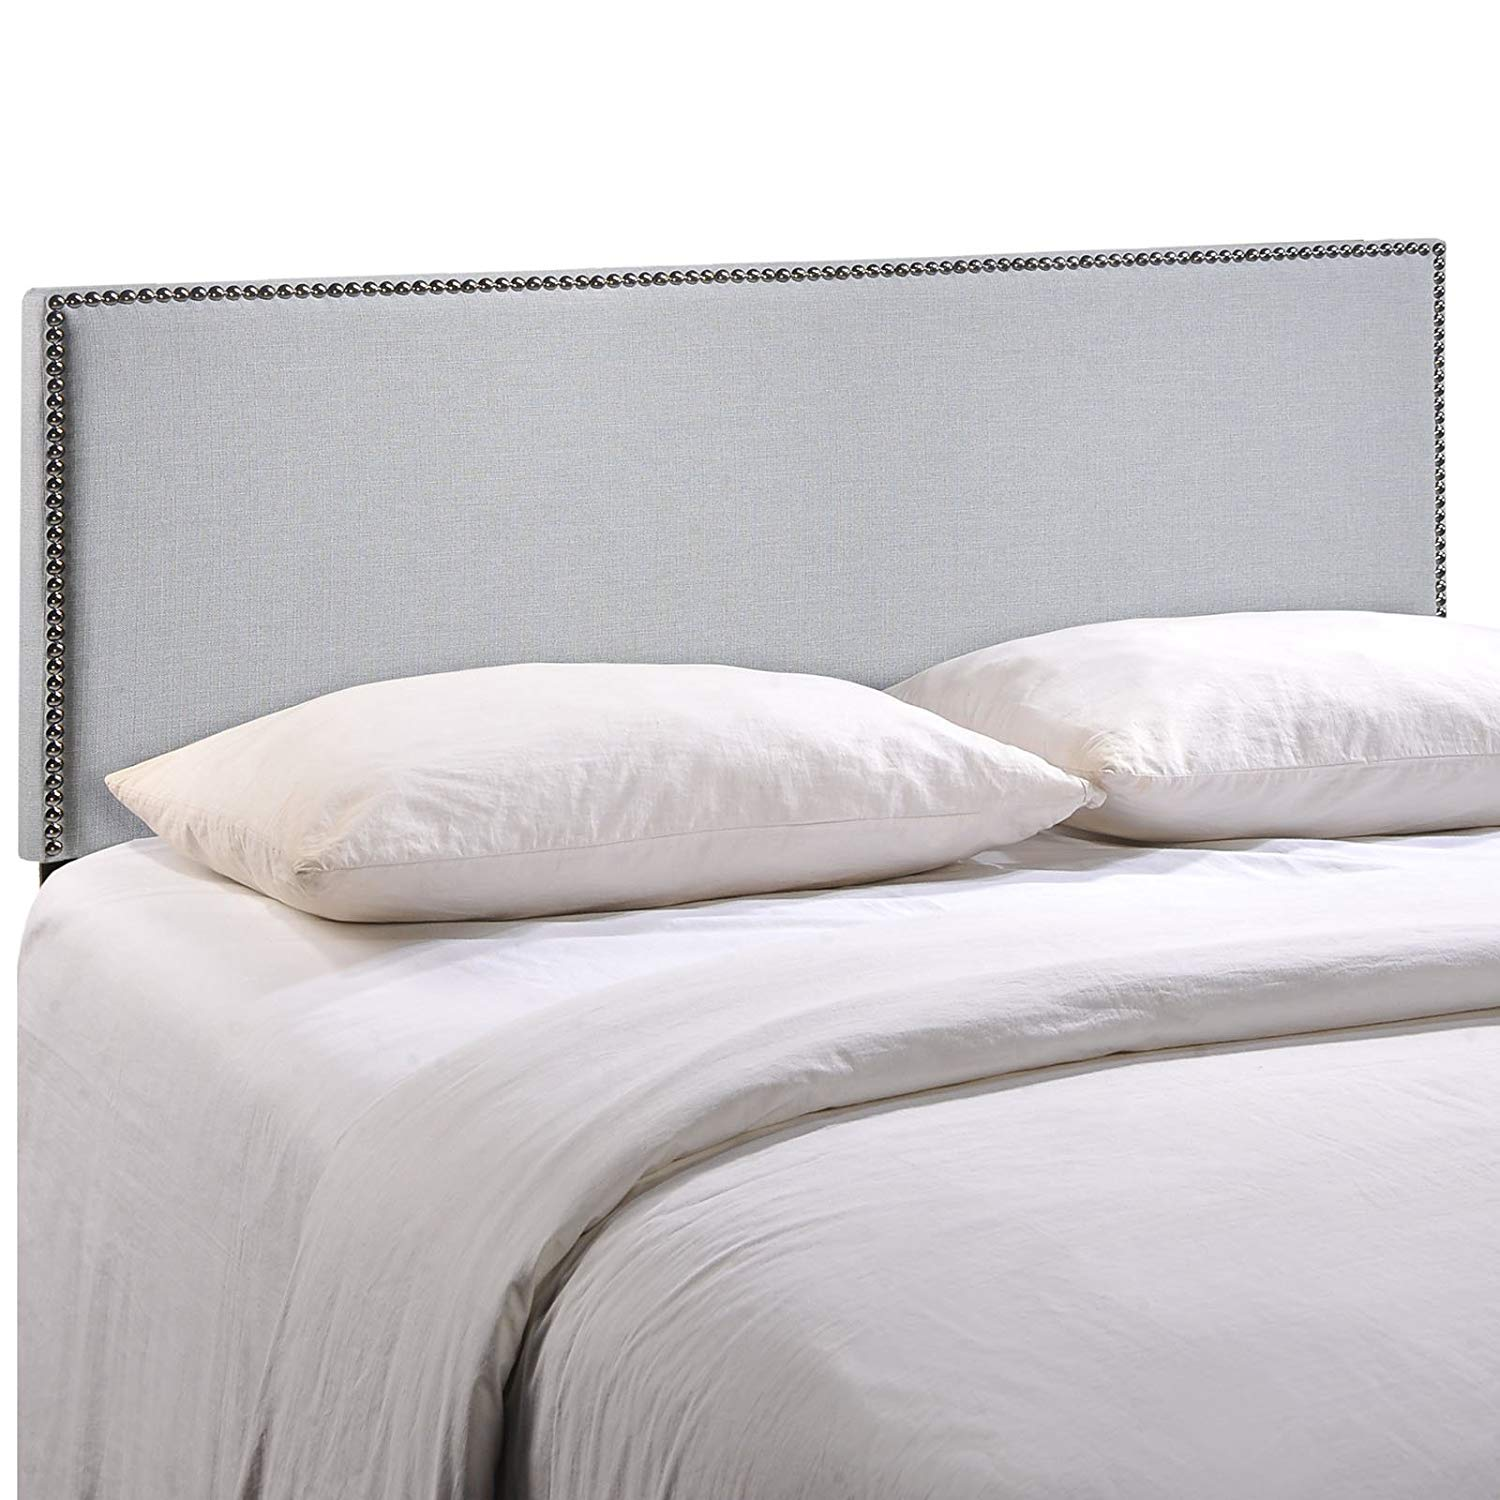 Modway Region Nailhead Linen King Headboard